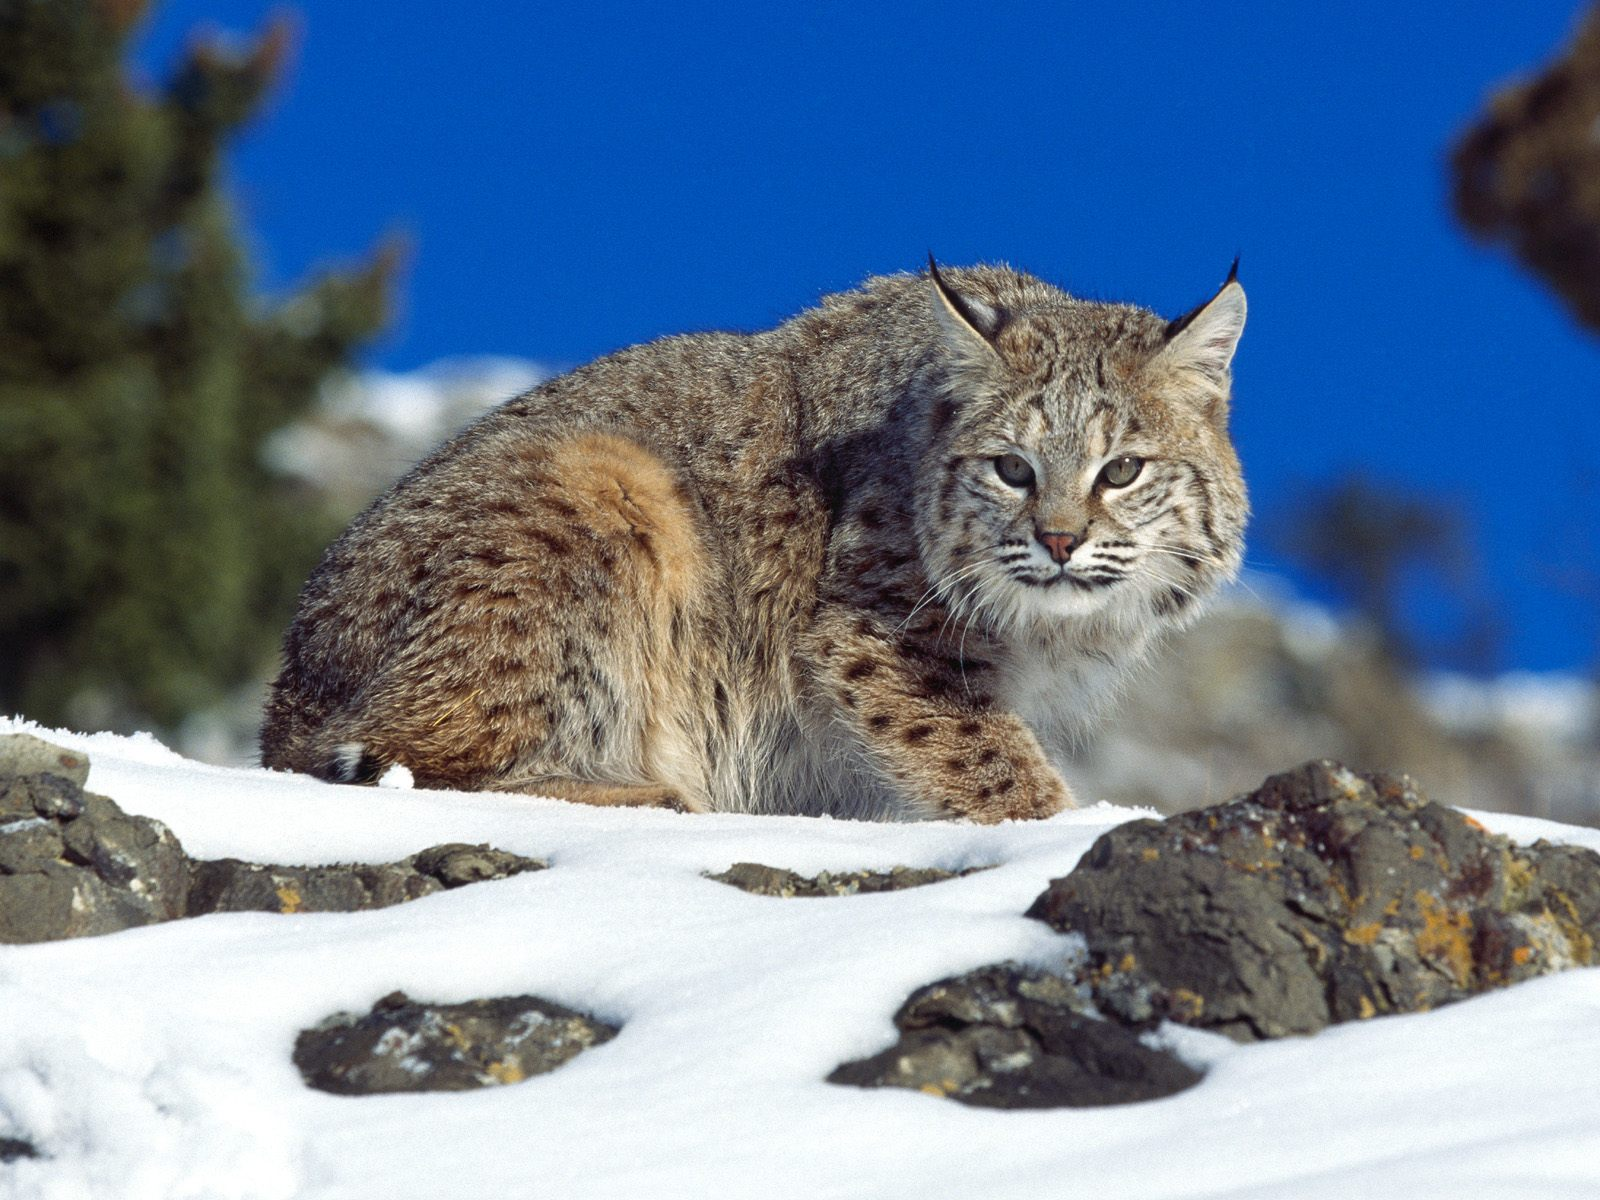 Bobcat View Full-Size Image